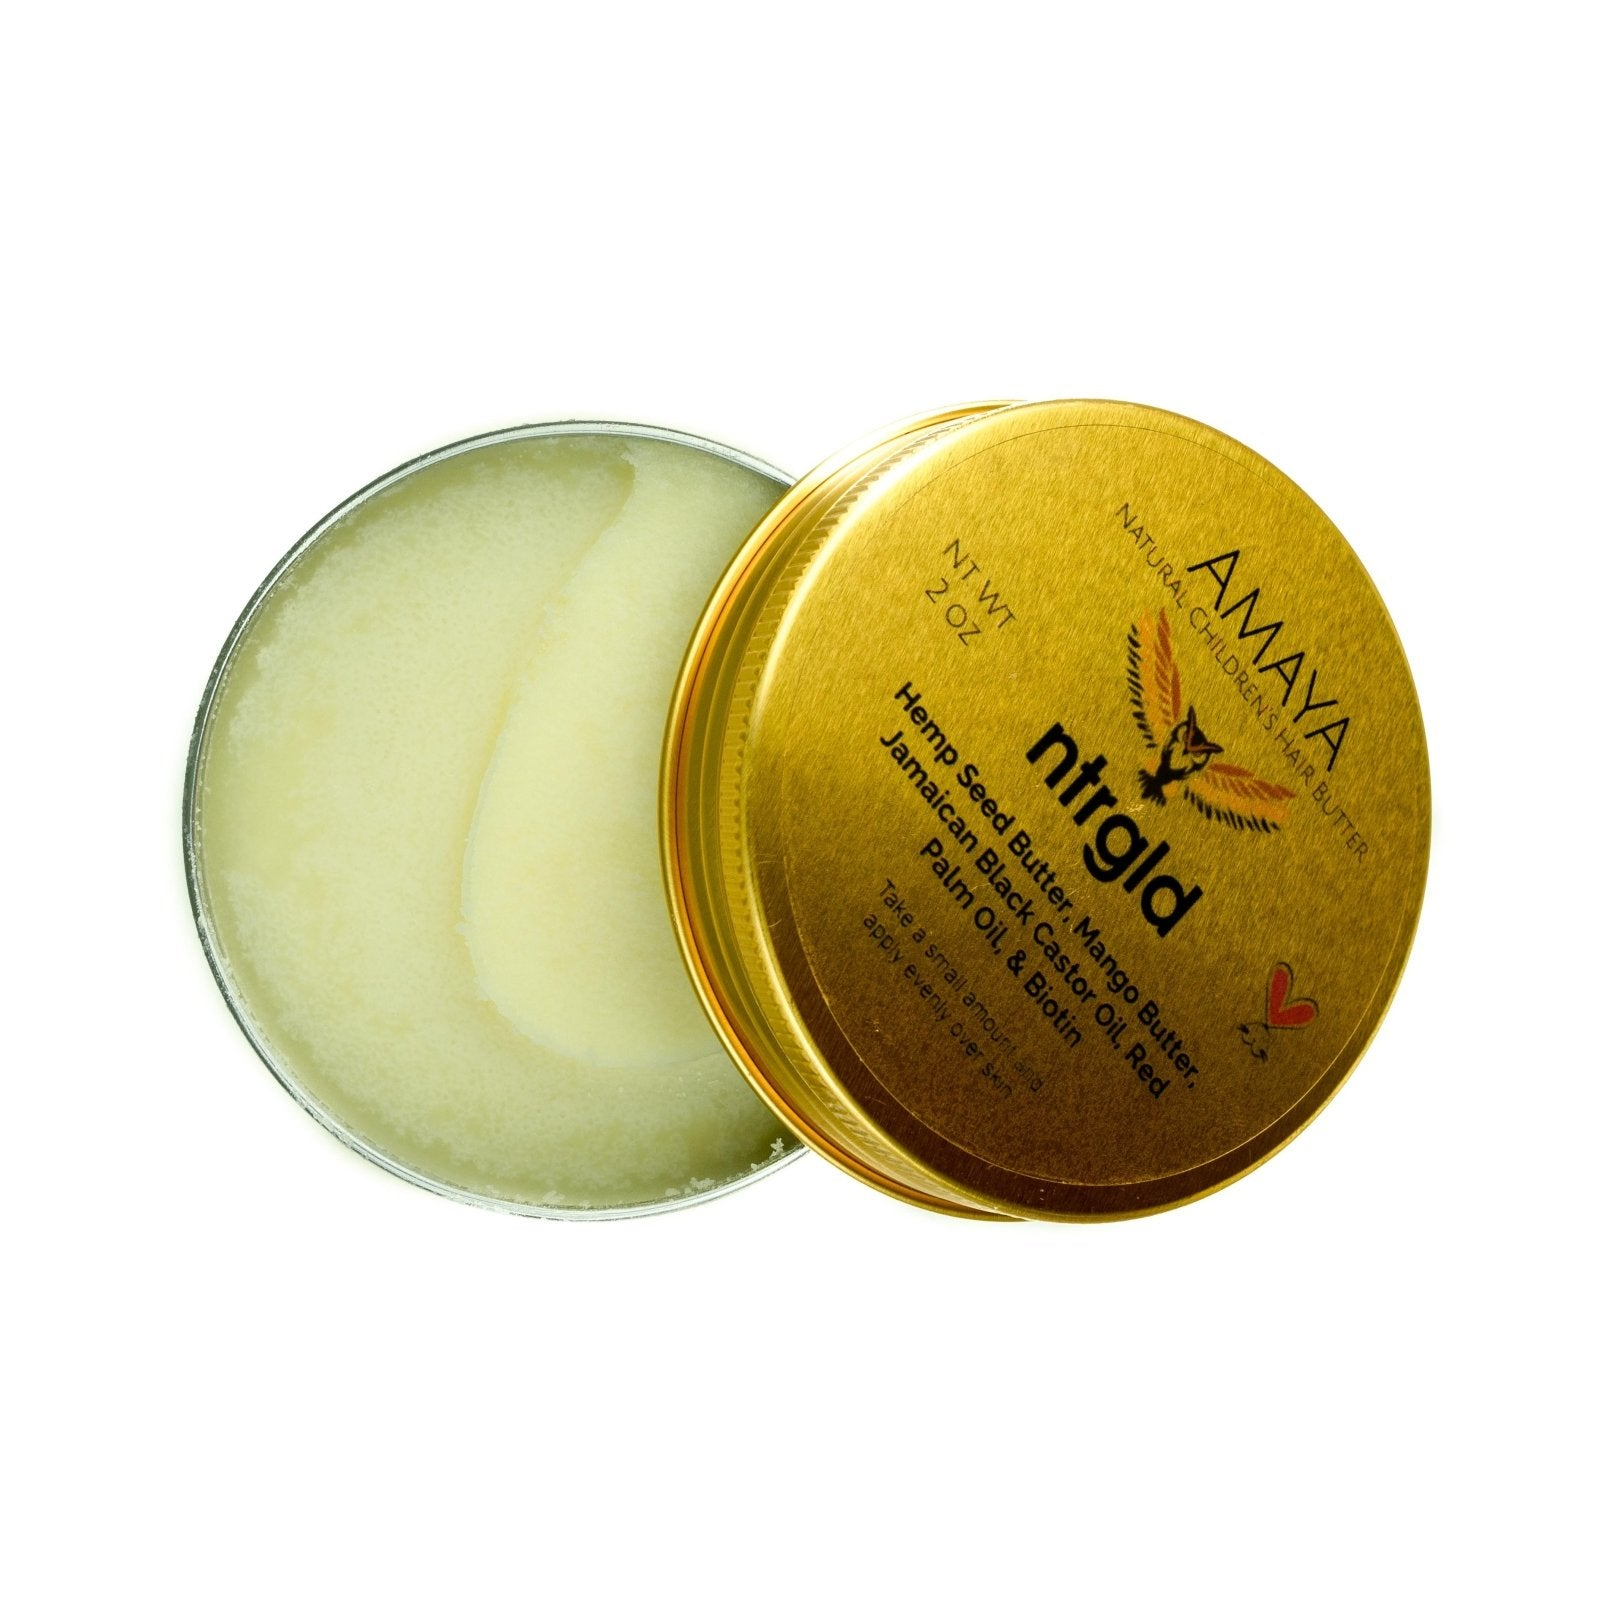 Amaya - Children's Hair Growth Butter - Neter Gold - NTRGLD - NETER GOLD - All natural body care products designed to increase your natural godly glow. - hair growth - eczema - dry skin